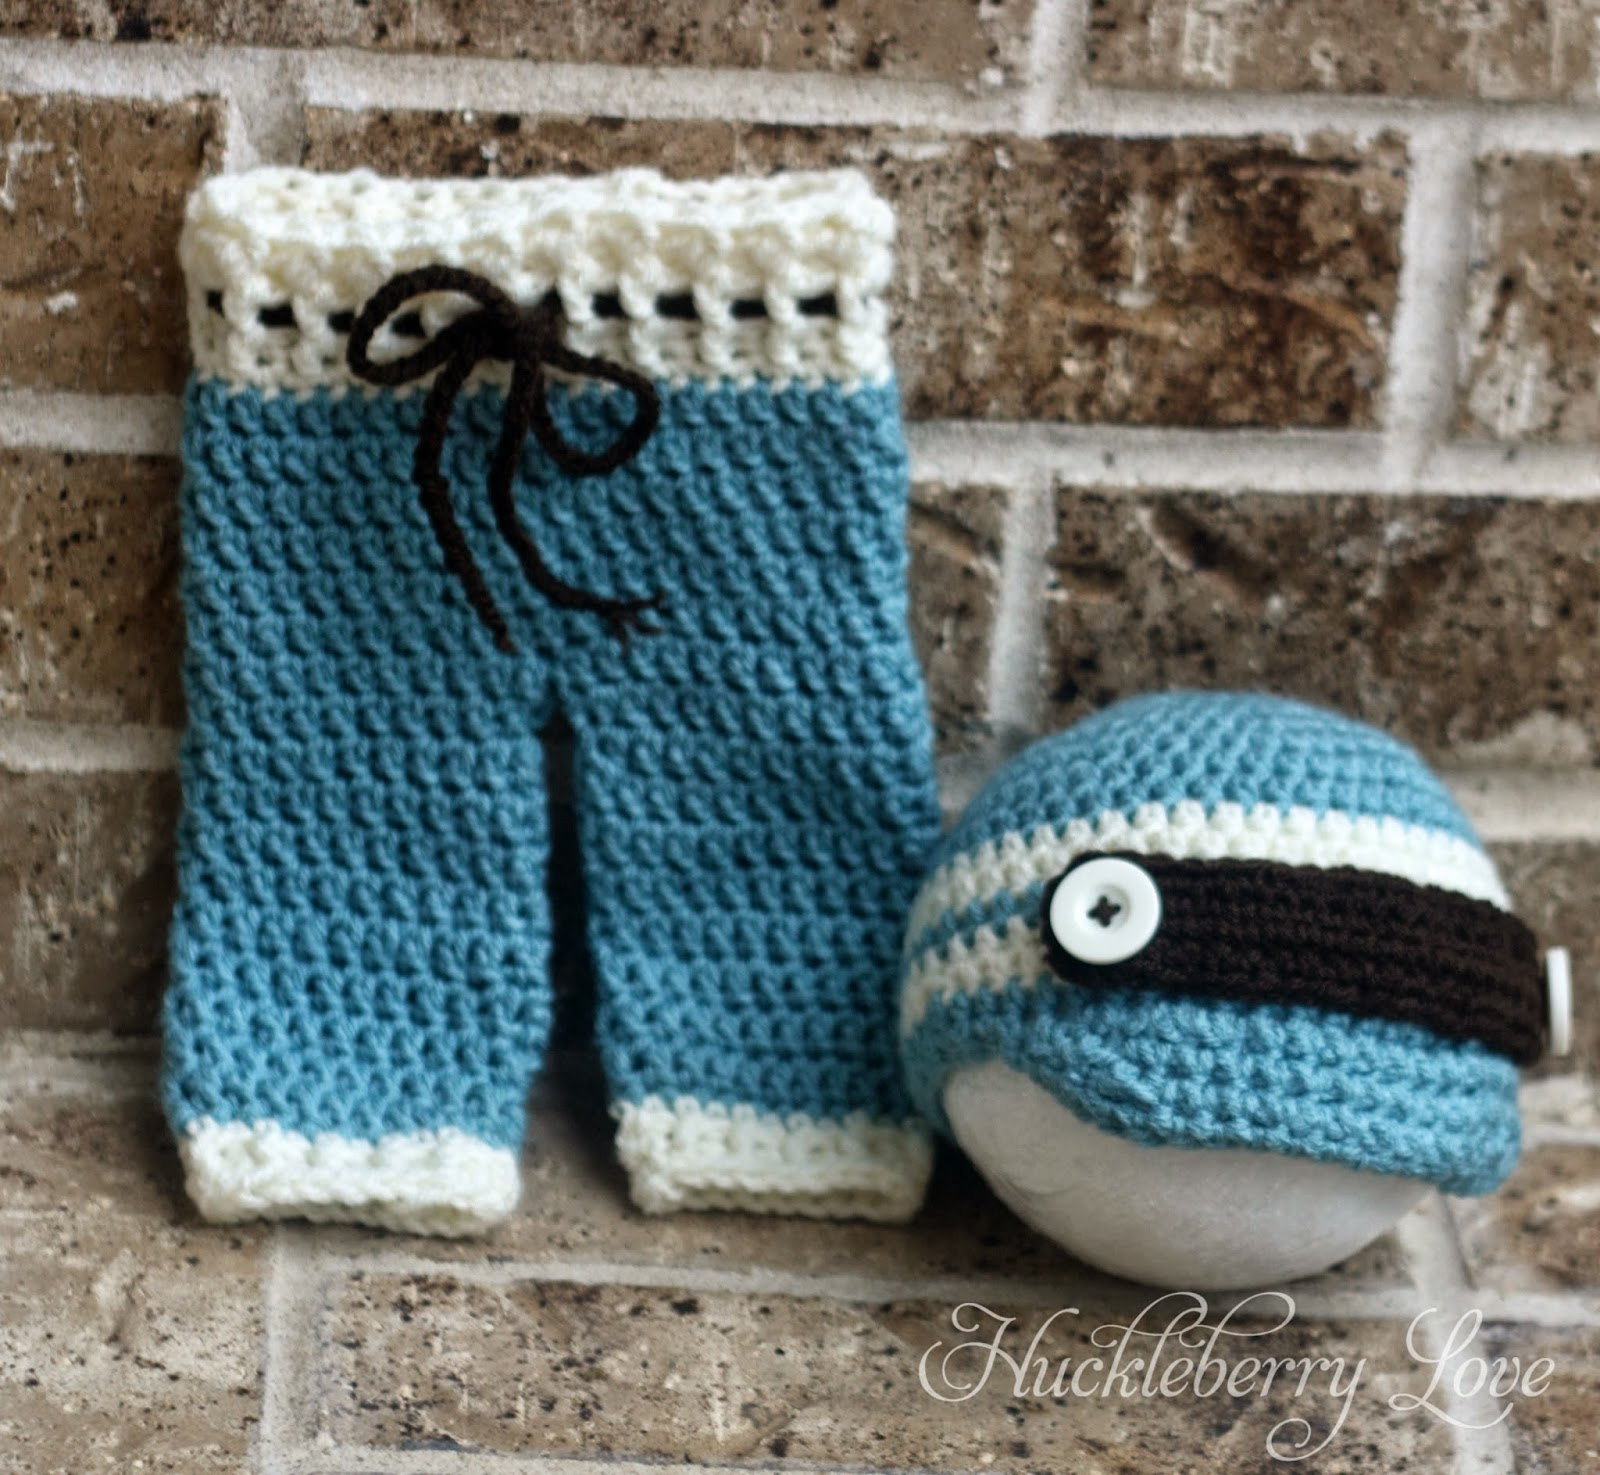 Crochet Pants : Here is the matching hat to these super cute crochet pants!